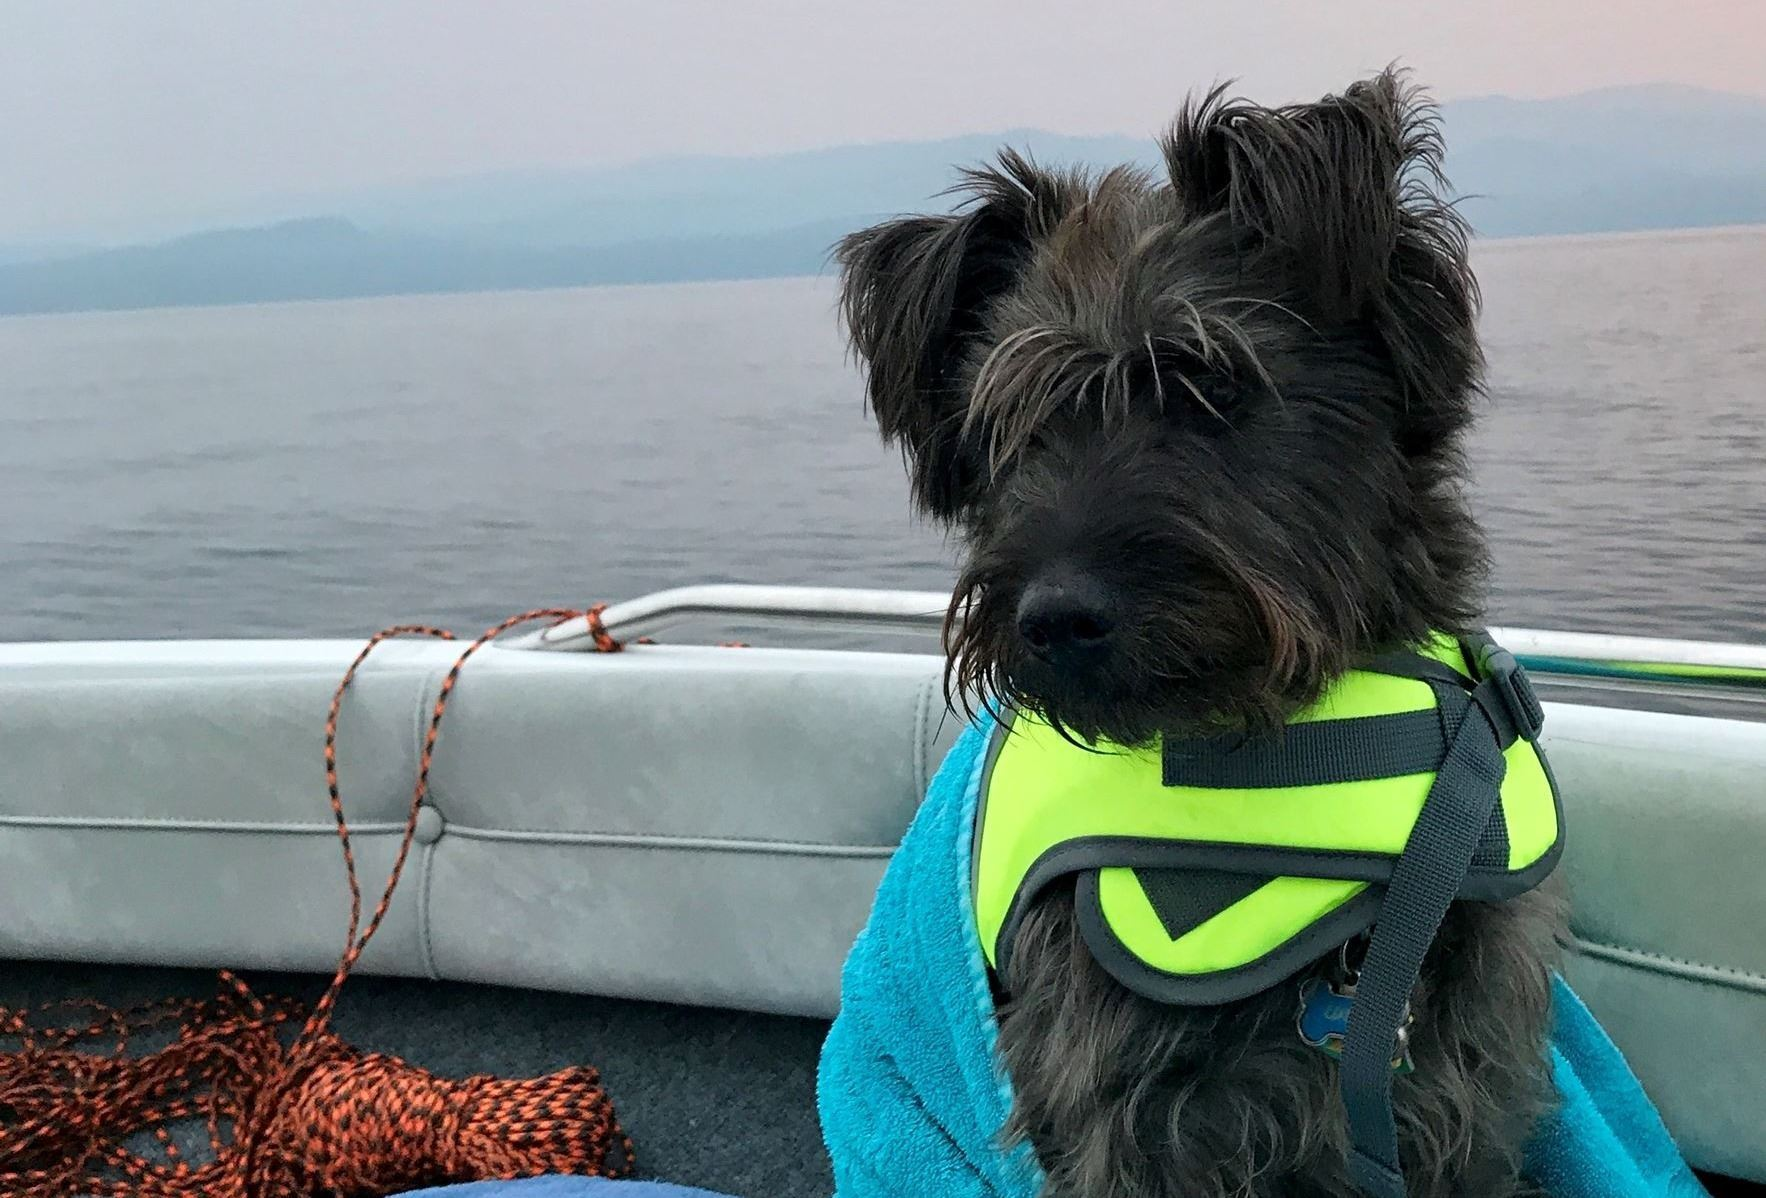 Dog on a boat on a lake